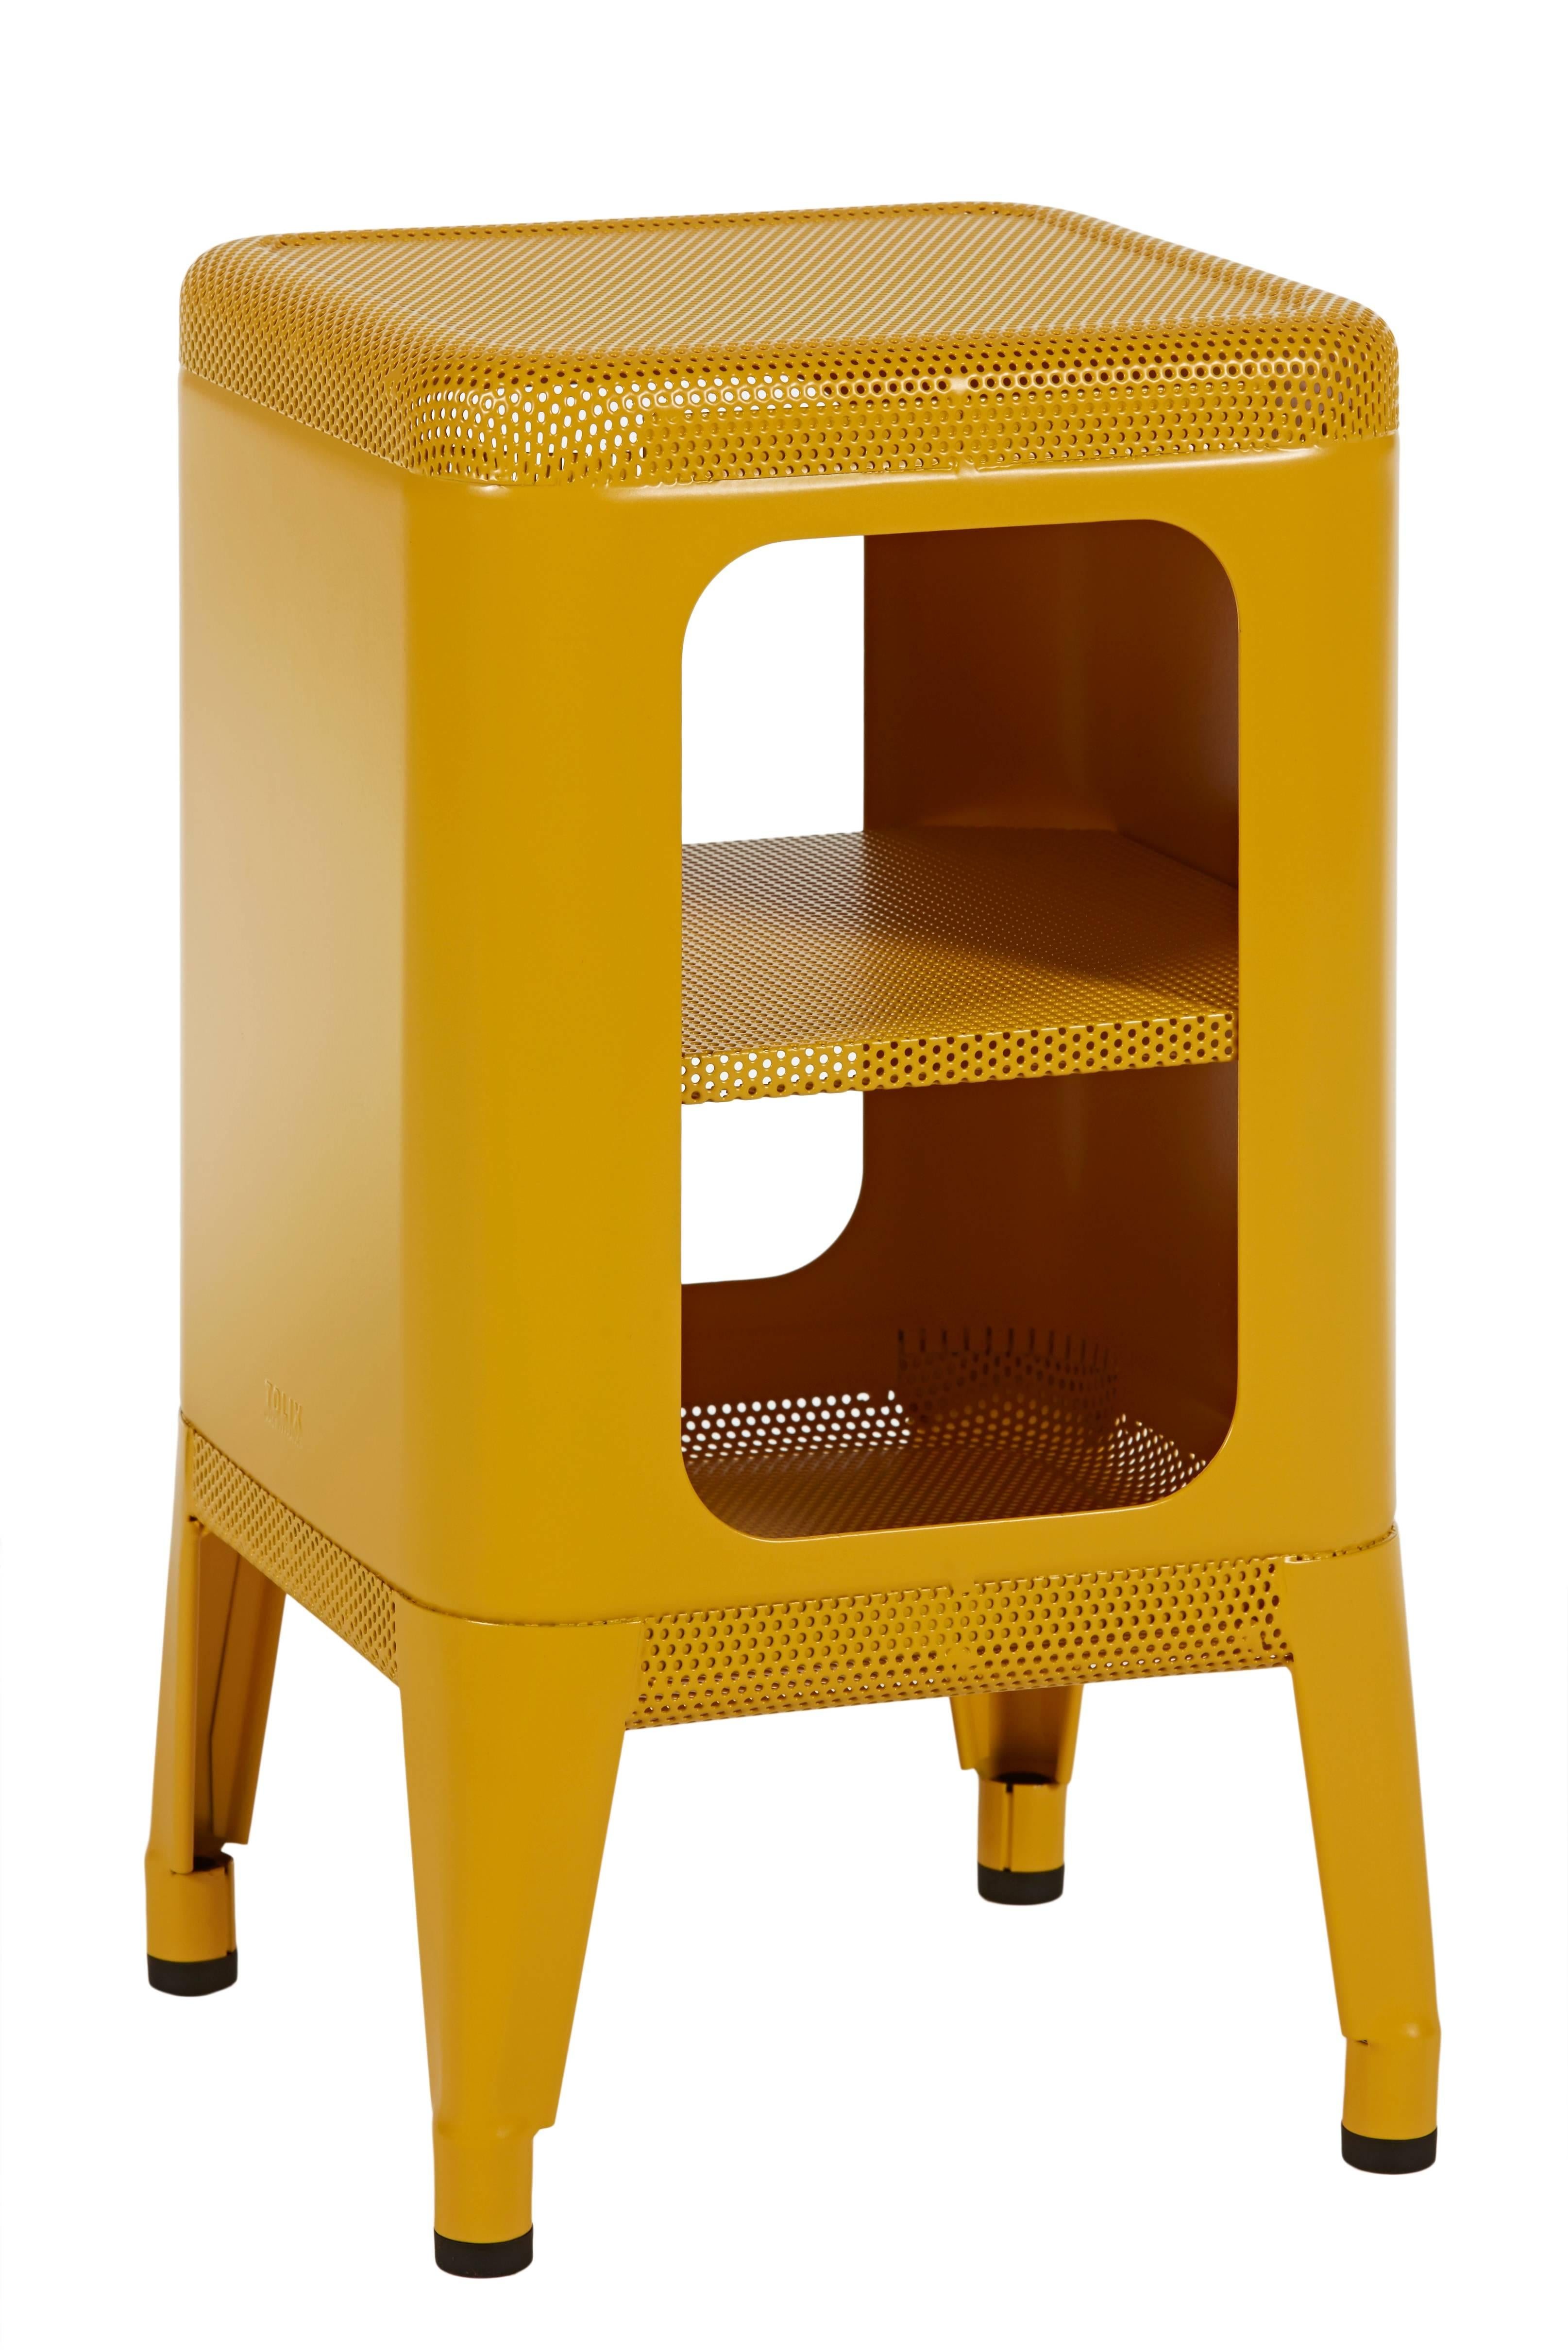 Conceived by designer Frédéric Gaunet the Stool Shelf is a storage unit and for  sc 1 st  1stDibs & Perforated Stool Shelf 500 in Mustard Yellow by Frederic Gaunet and ...